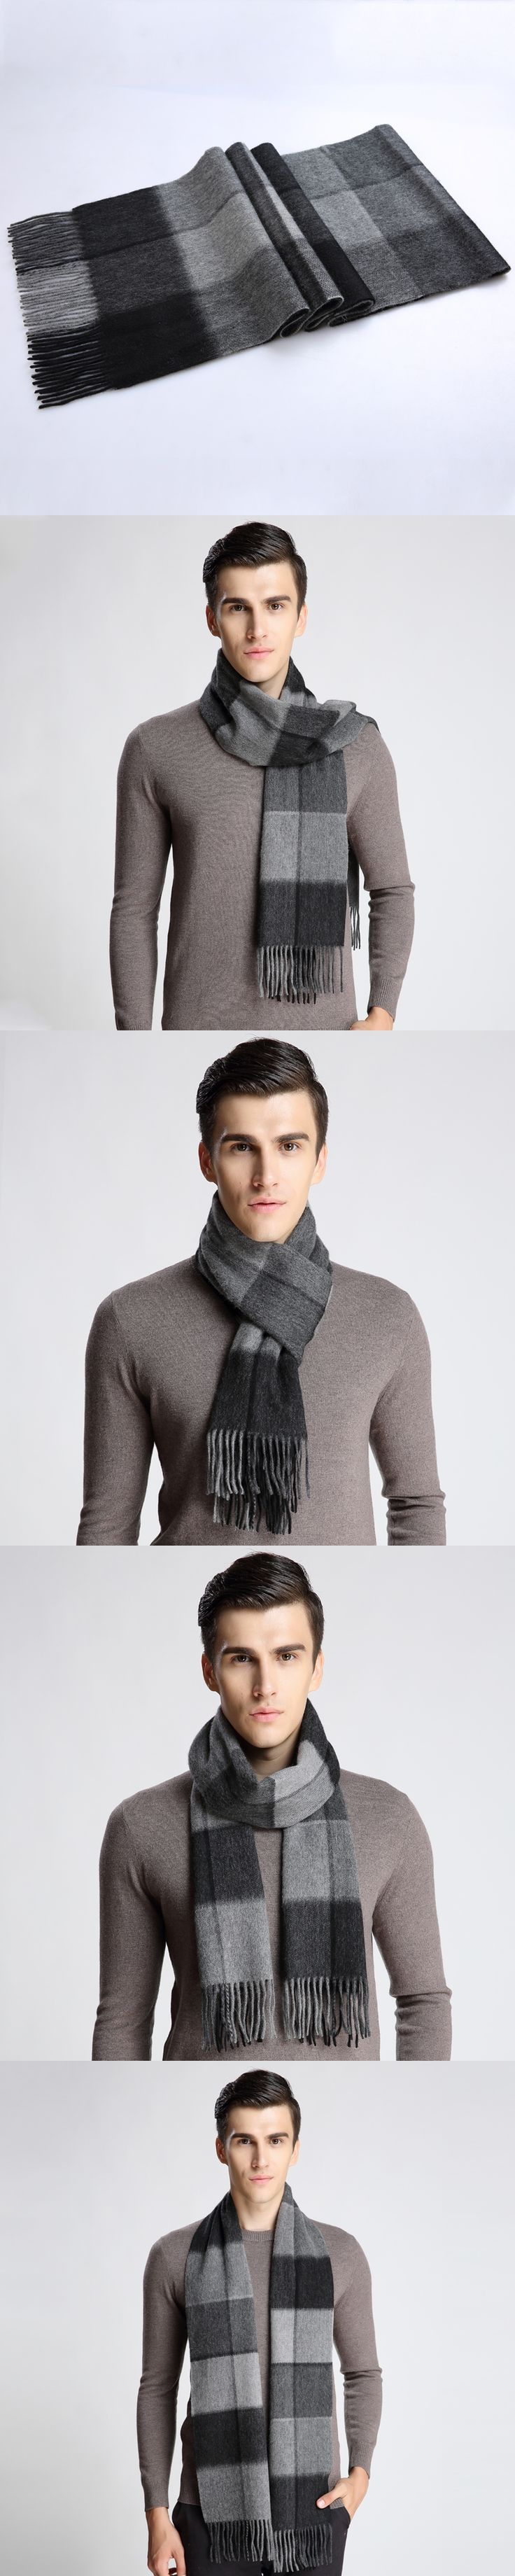 Fashion Winter Men Scarf Hot Sale Thicked Warm Man's Cashmere Scarf Plaid Scarf For Man Winter Autumn Scarf